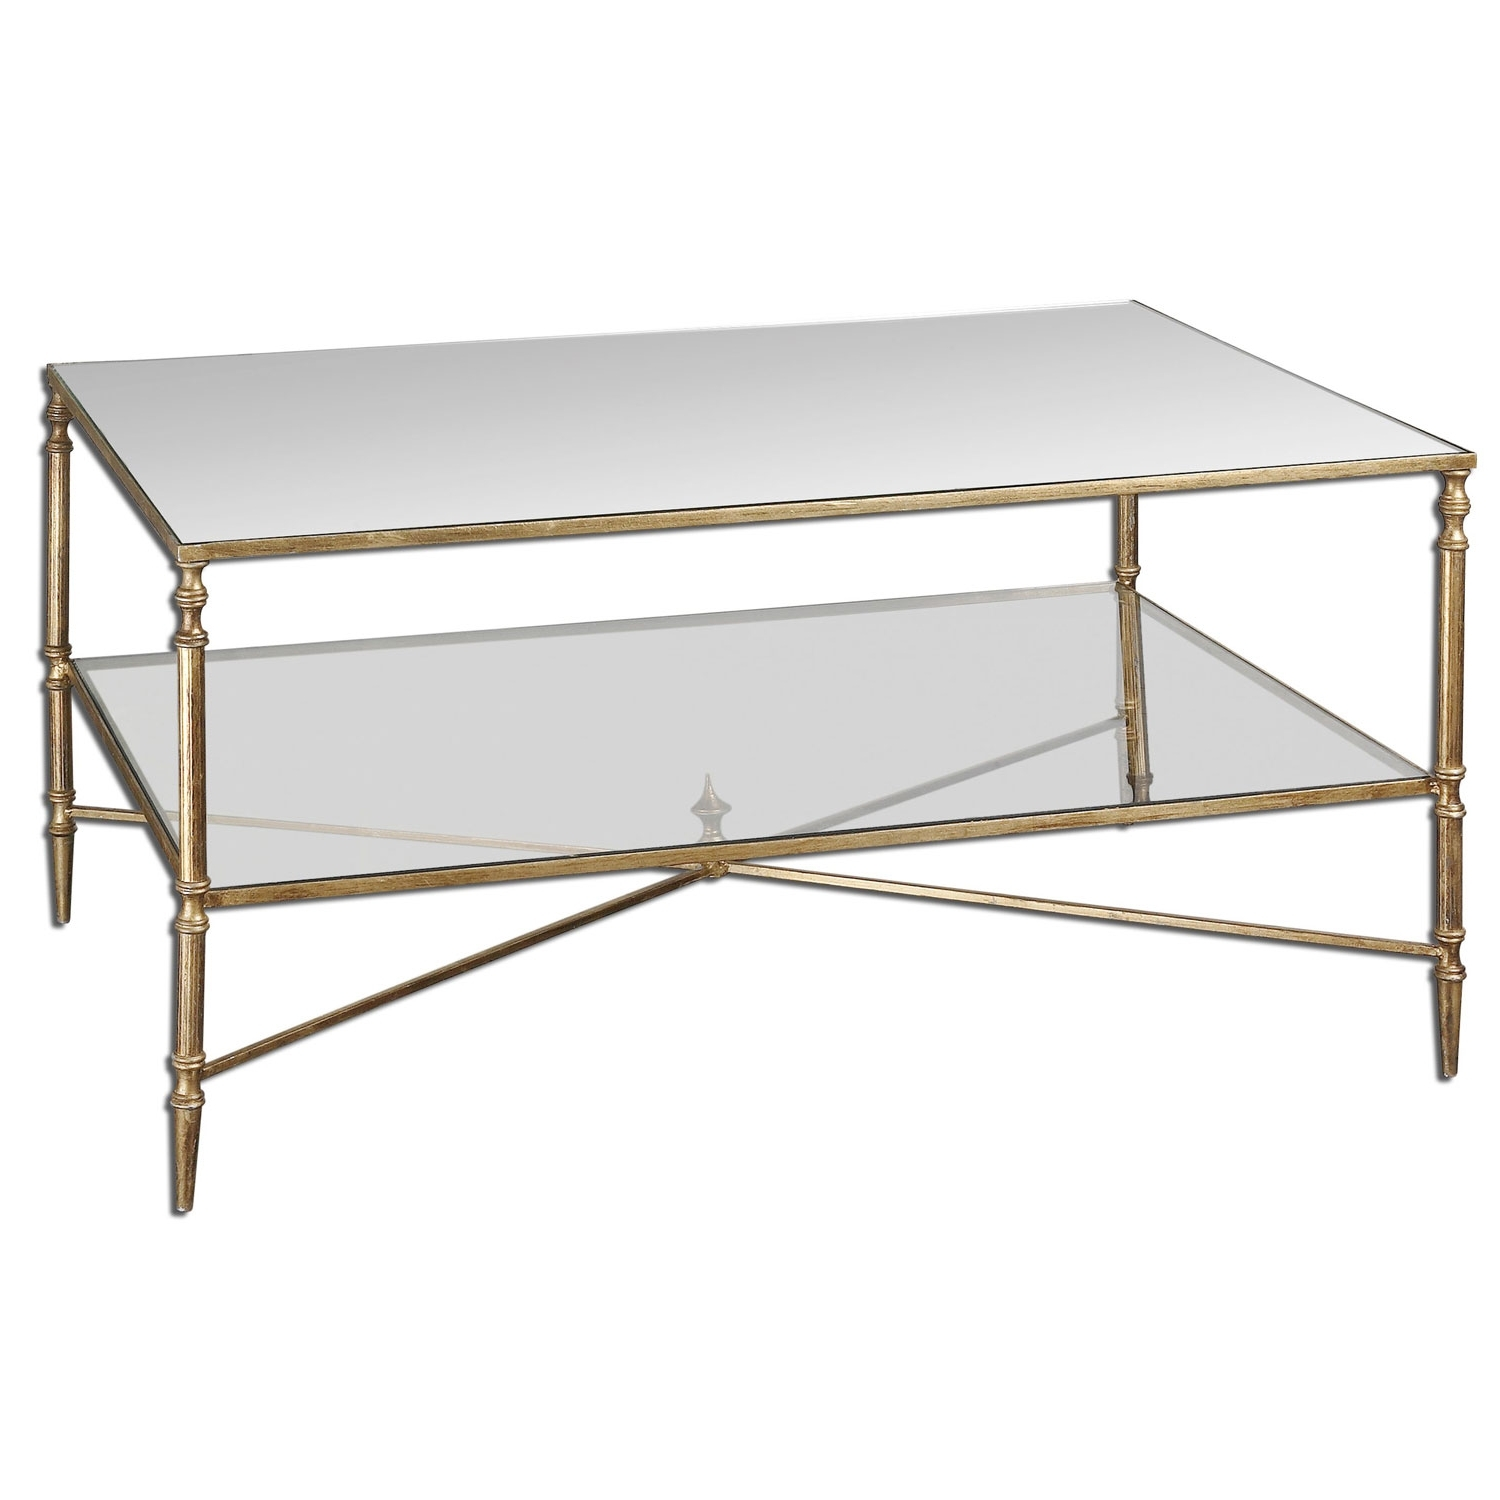 Best And Newest Rectangular Coffee Tables With Brass Legs For Uttermost Gold Henzler Coffee Table (View 8 of 20)